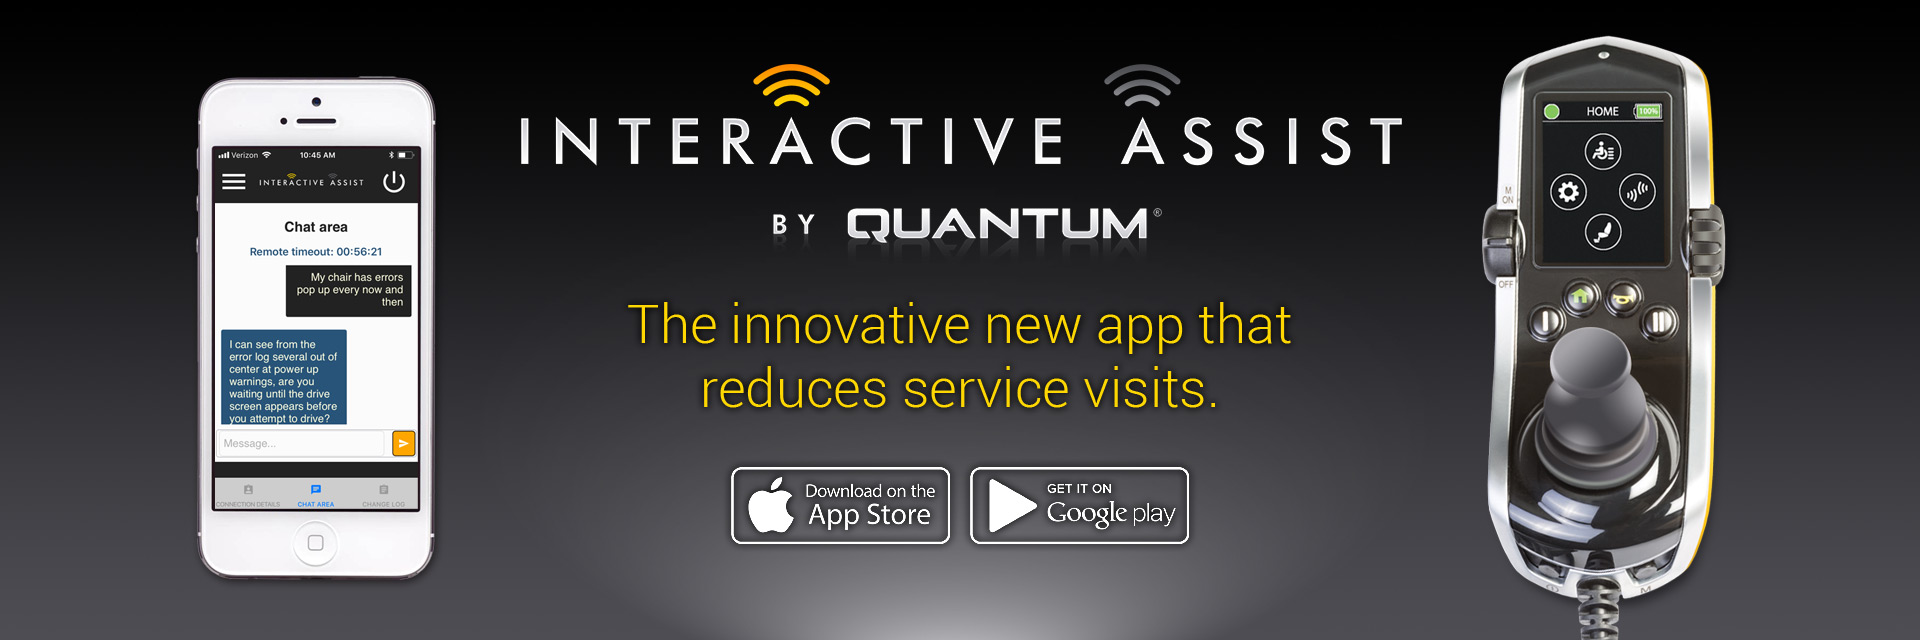 Interactive Assist